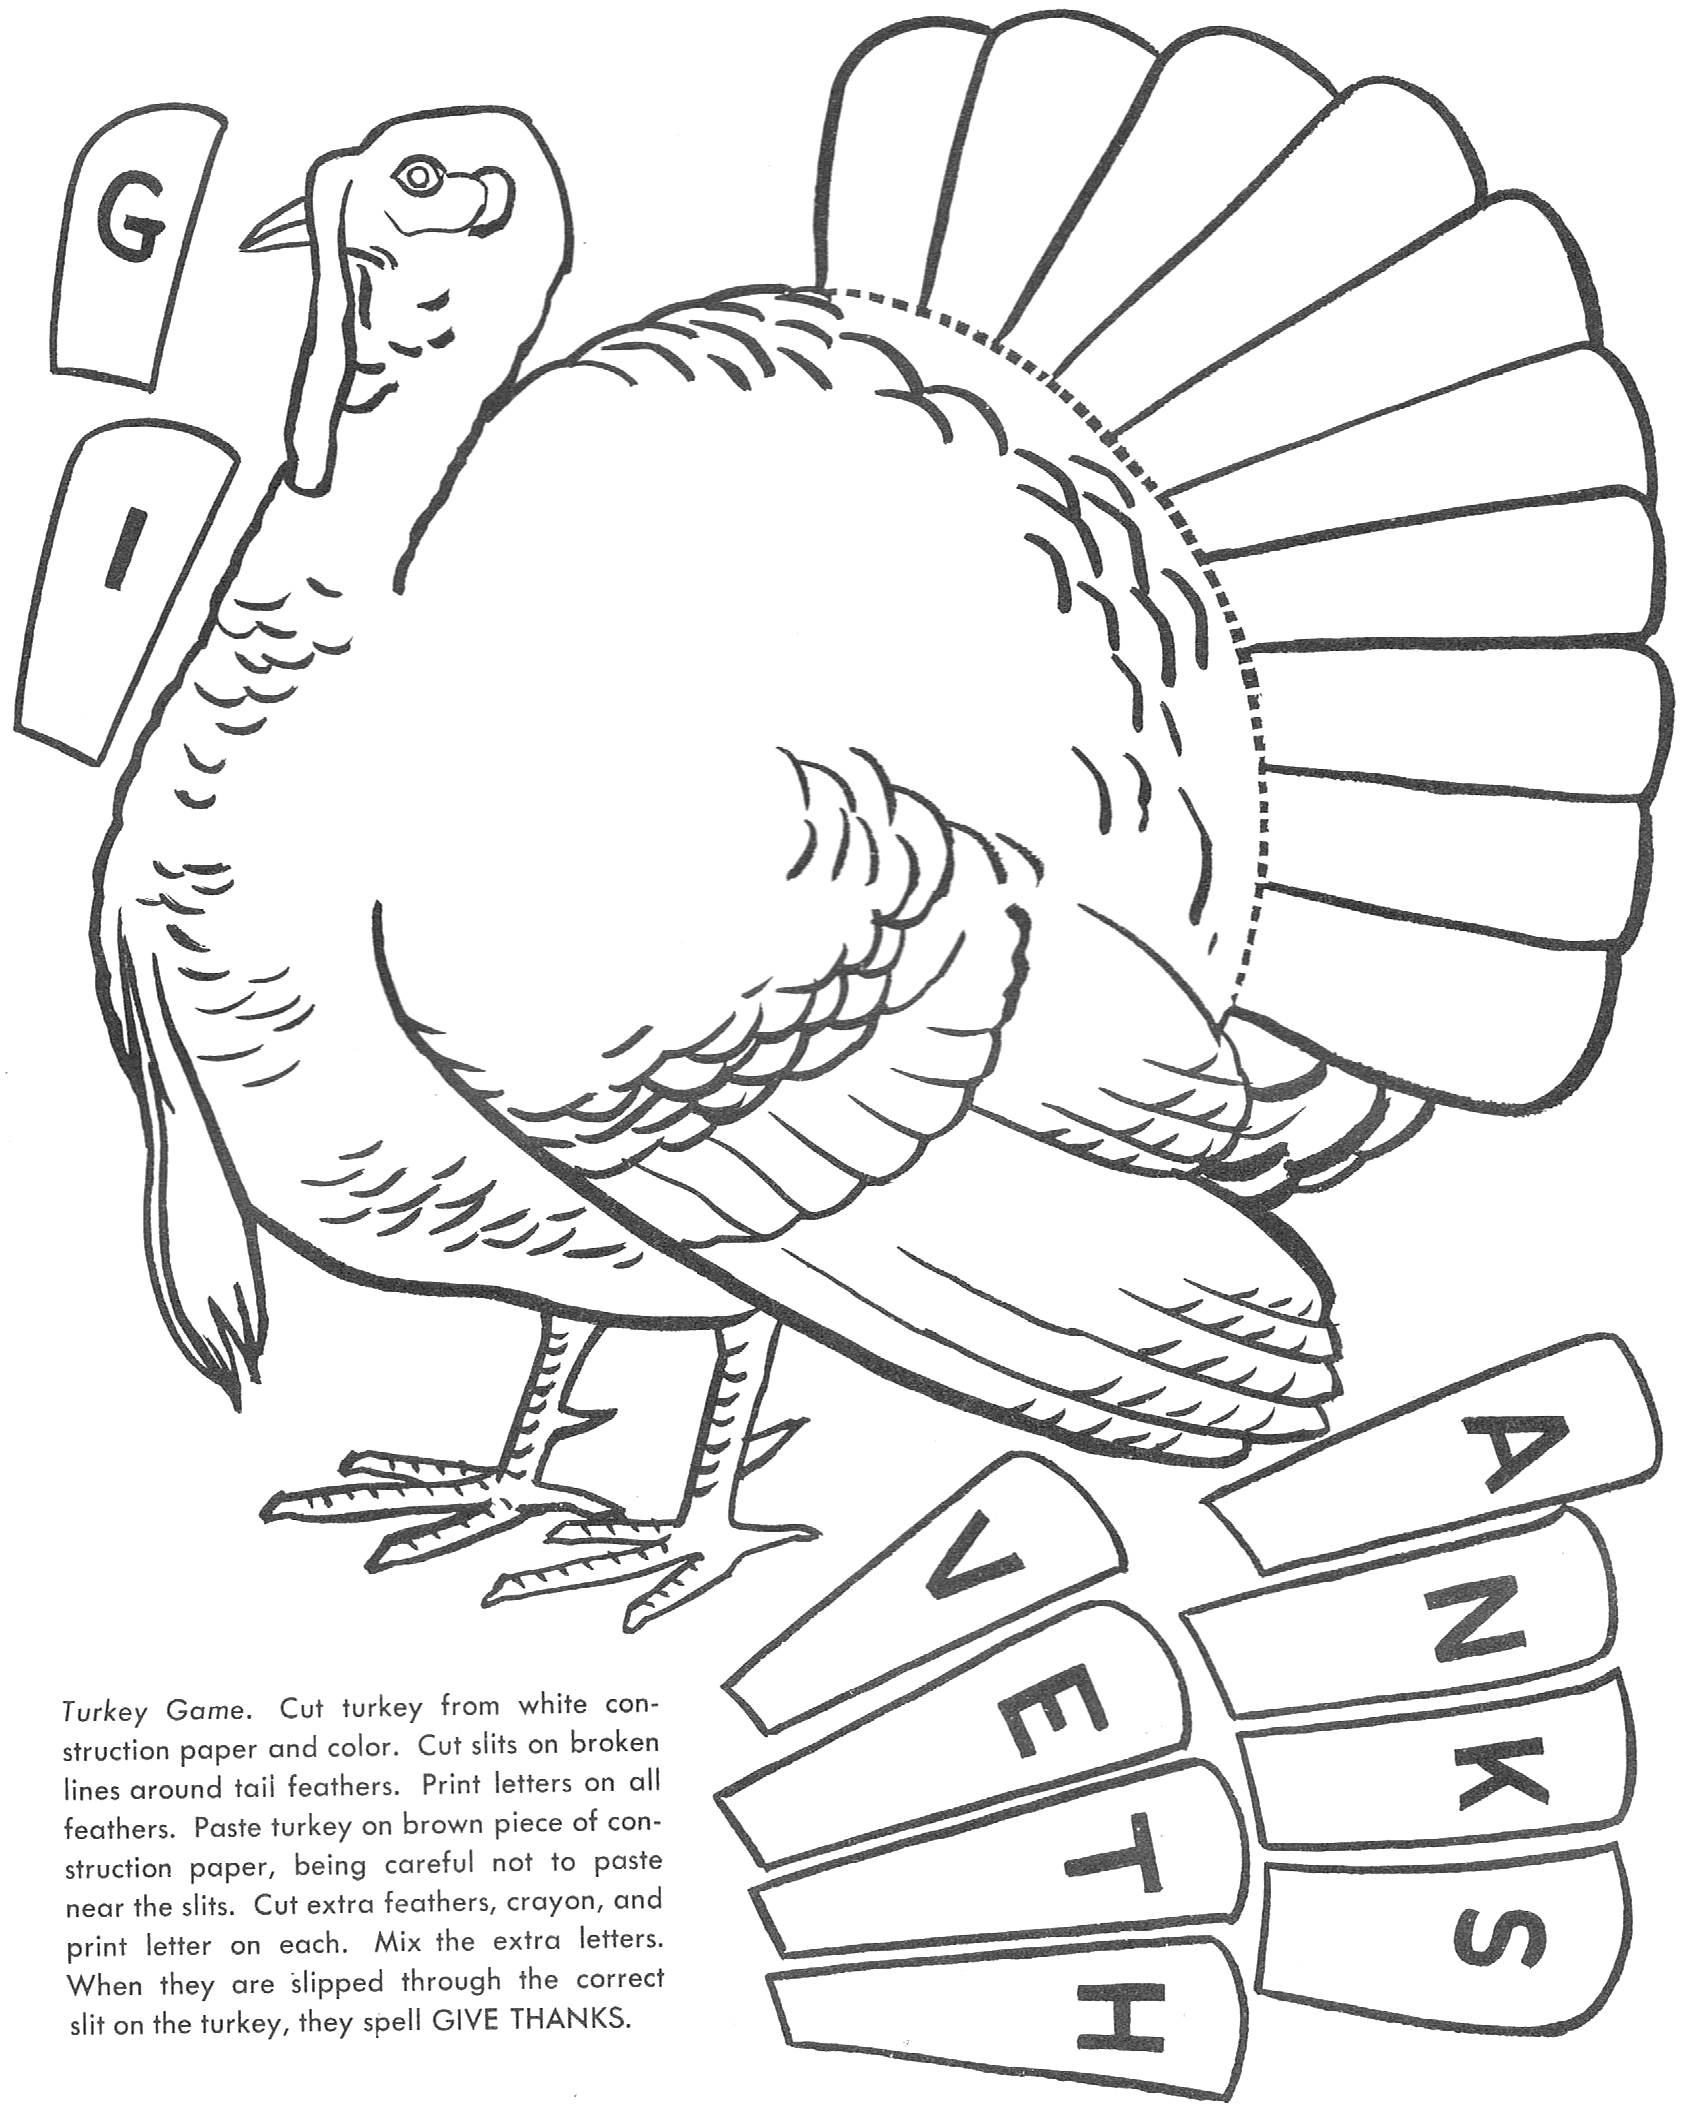 Free Coloring Turkey Print Out | Leave a Reply Cancel reply ...